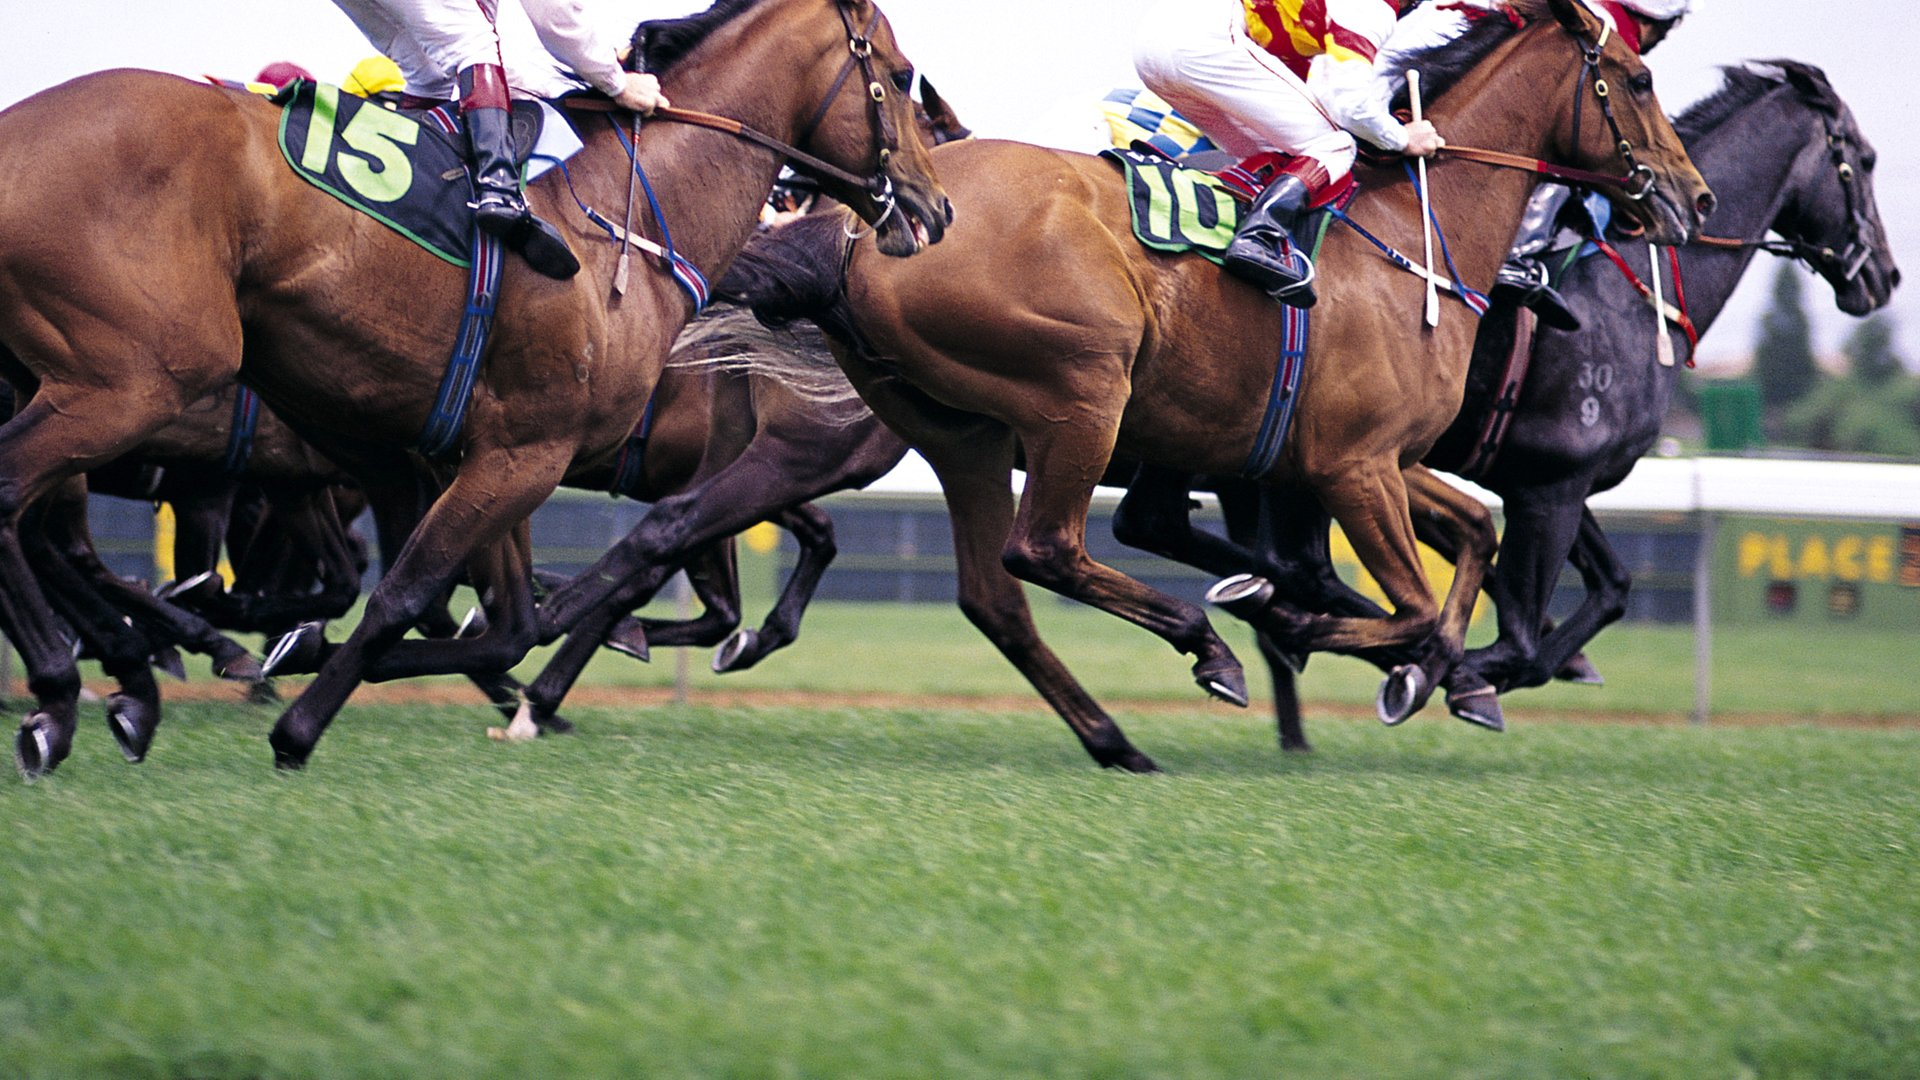 wild horses racing wallpaper - photo #33